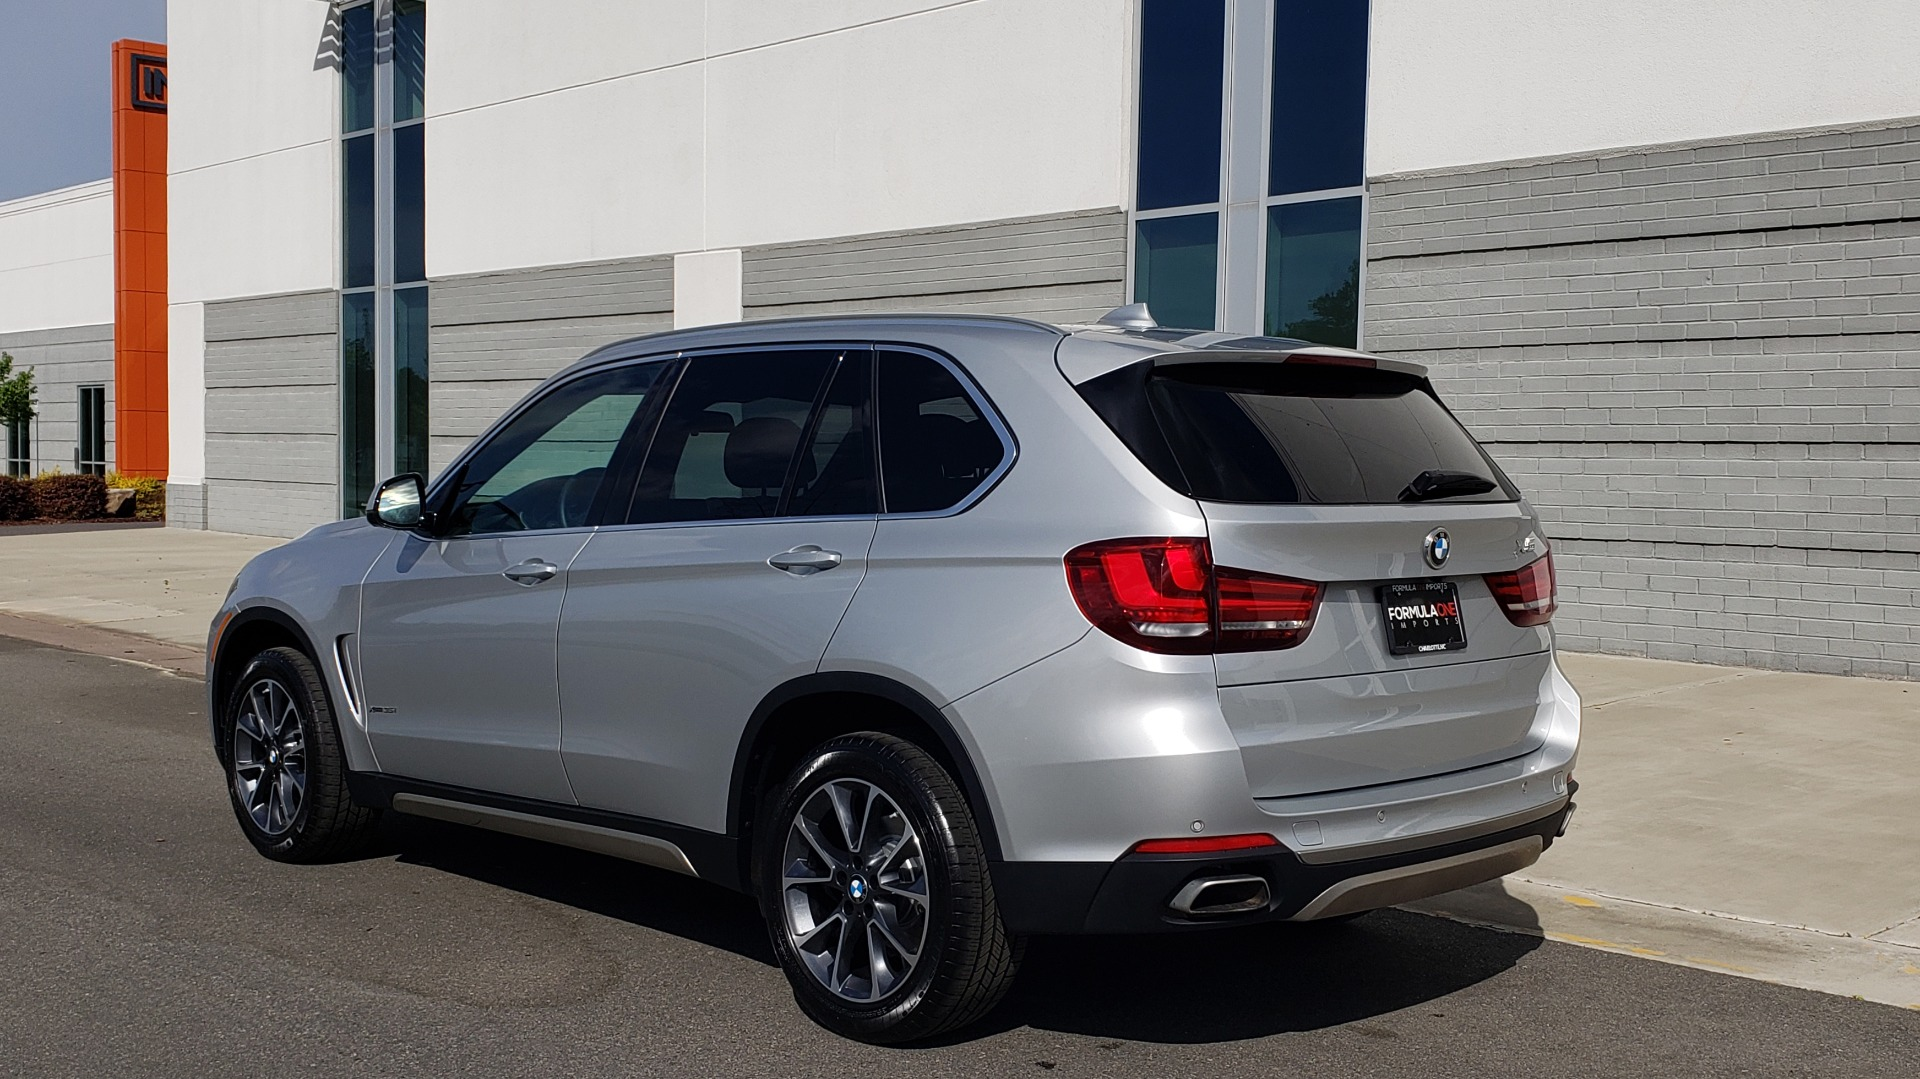 Used 2018 BMW X5 XDRIVE35I PREMIUM / NAV / PANO-ROOF / DRIVER ASST / REARVIEW for sale Sold at Formula Imports in Charlotte NC 28227 6